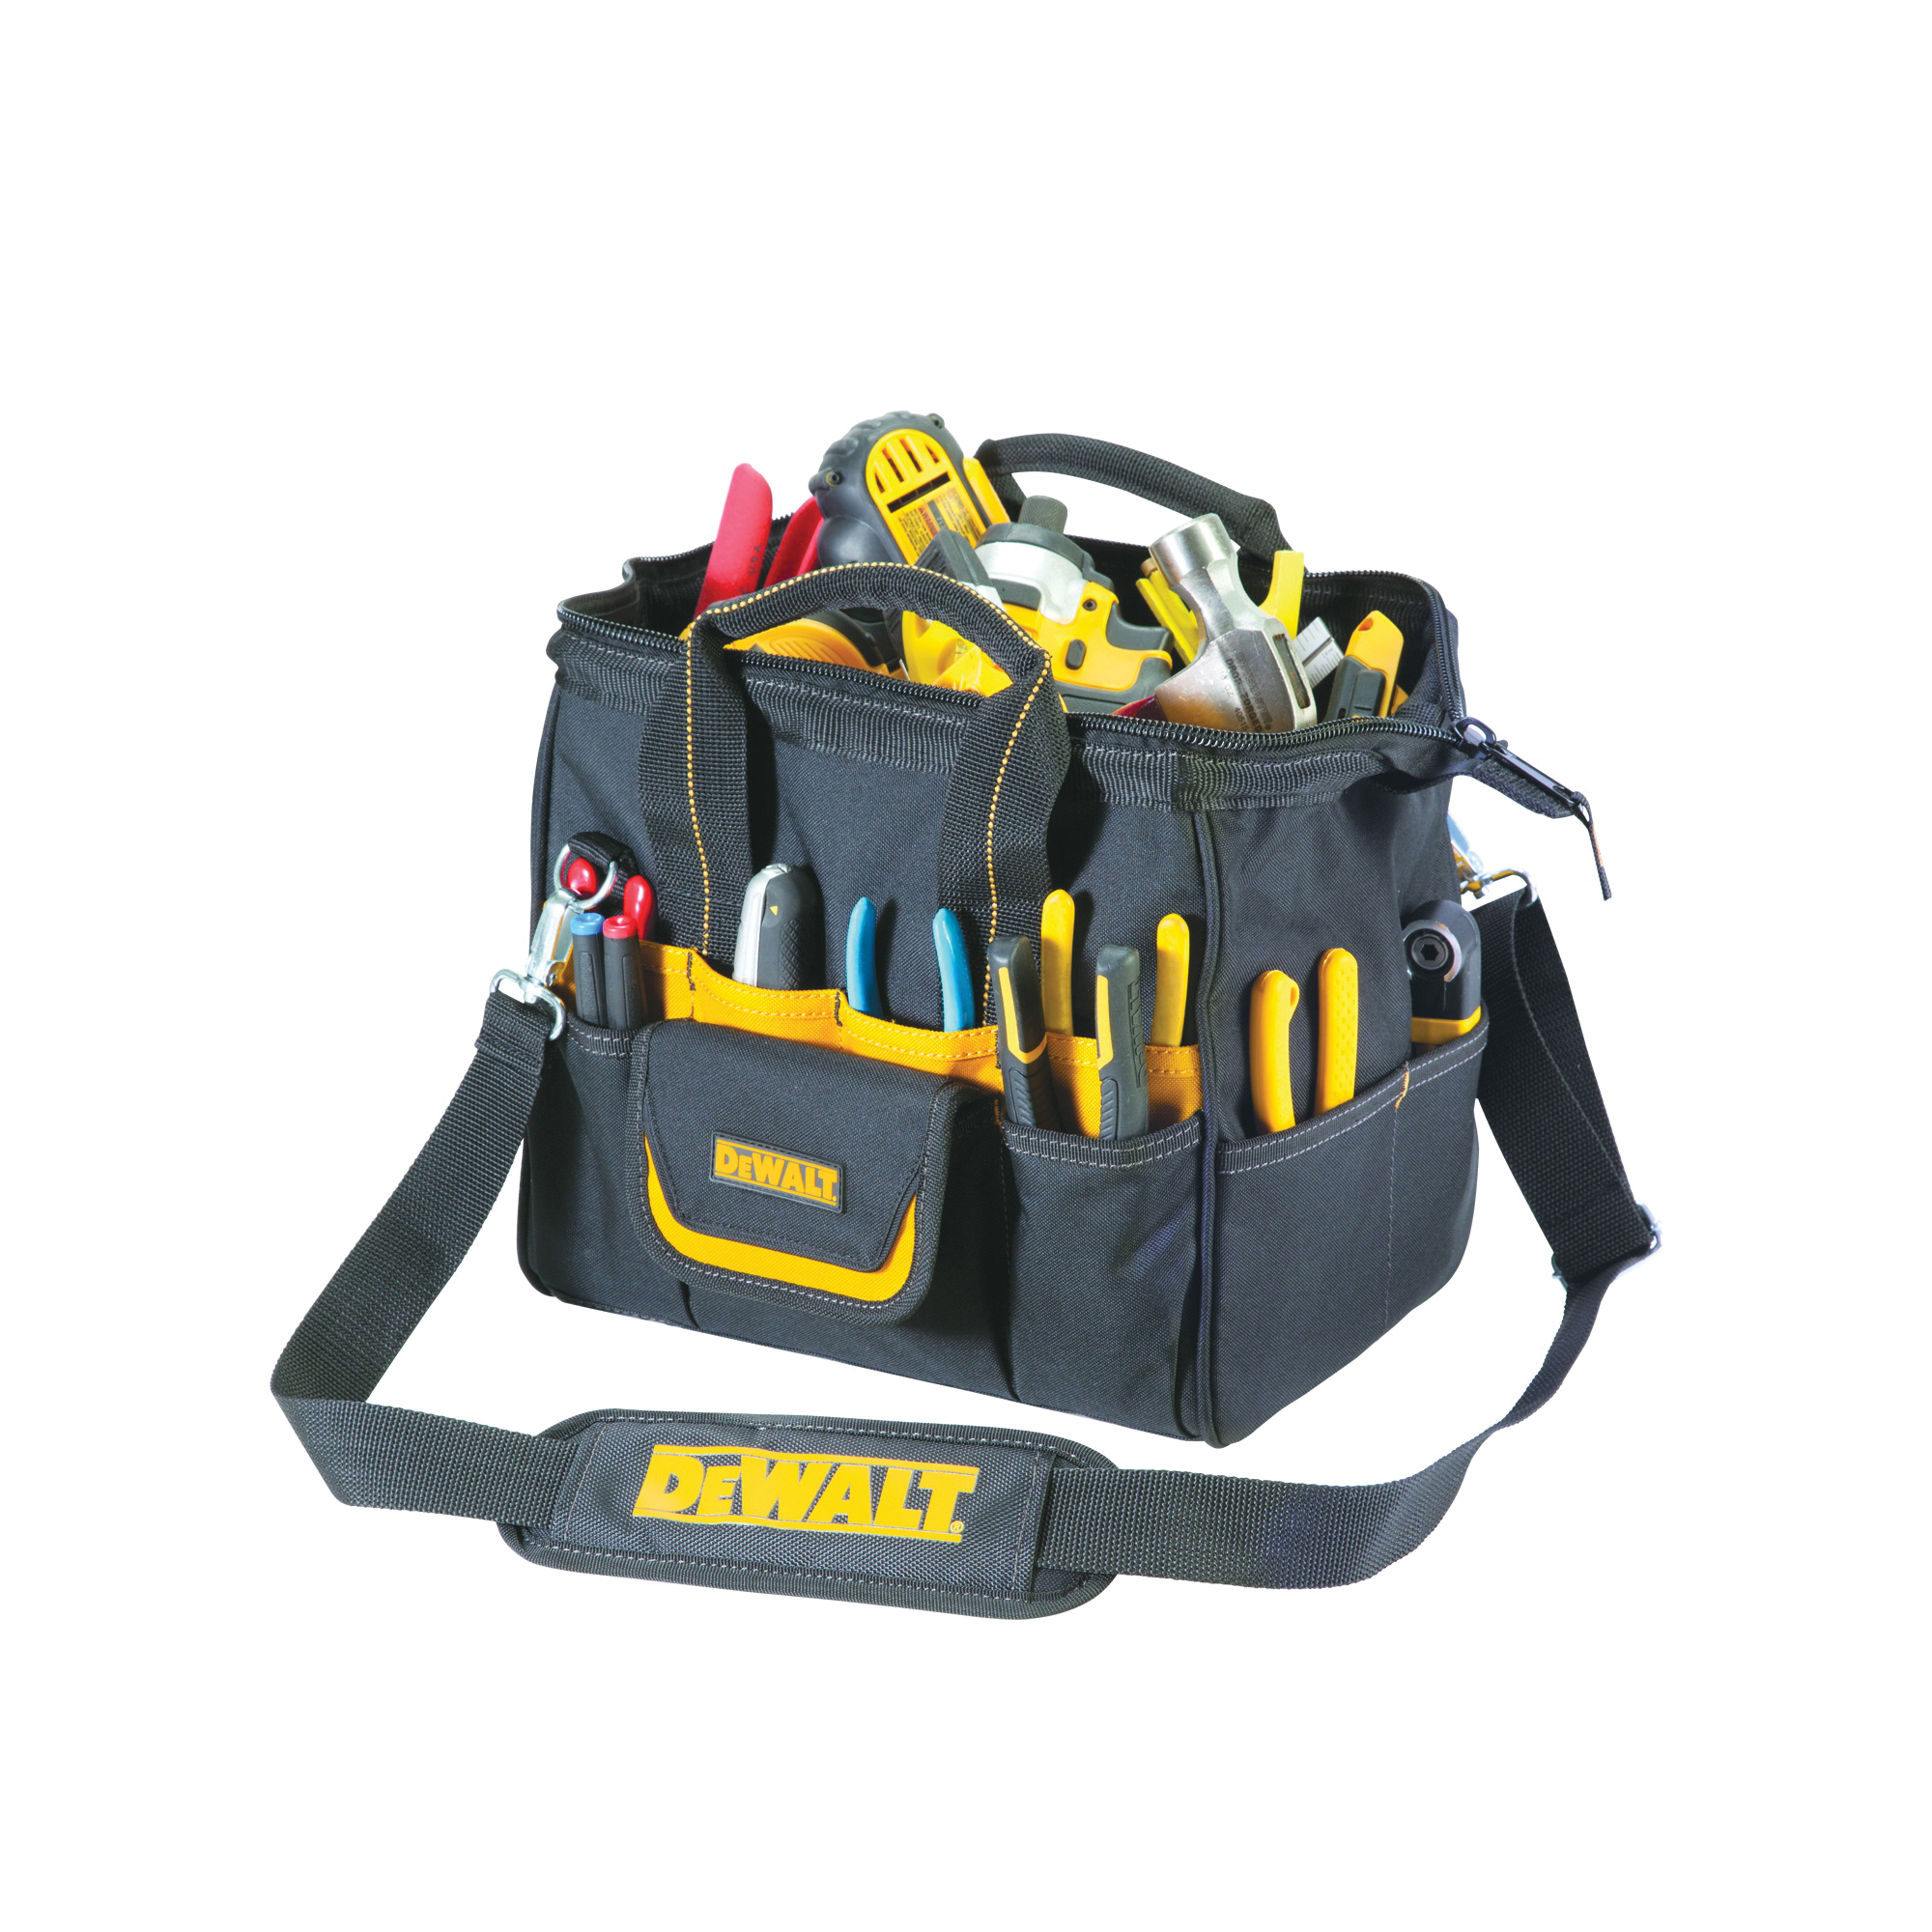 Picture of CLC DG5542 Tradesman Tool Bag, 4-1/2 in W, 13-1/4 in D, 12 in H, 29 -Pocket, Ballistic Poly Fabric, Black/Yellow